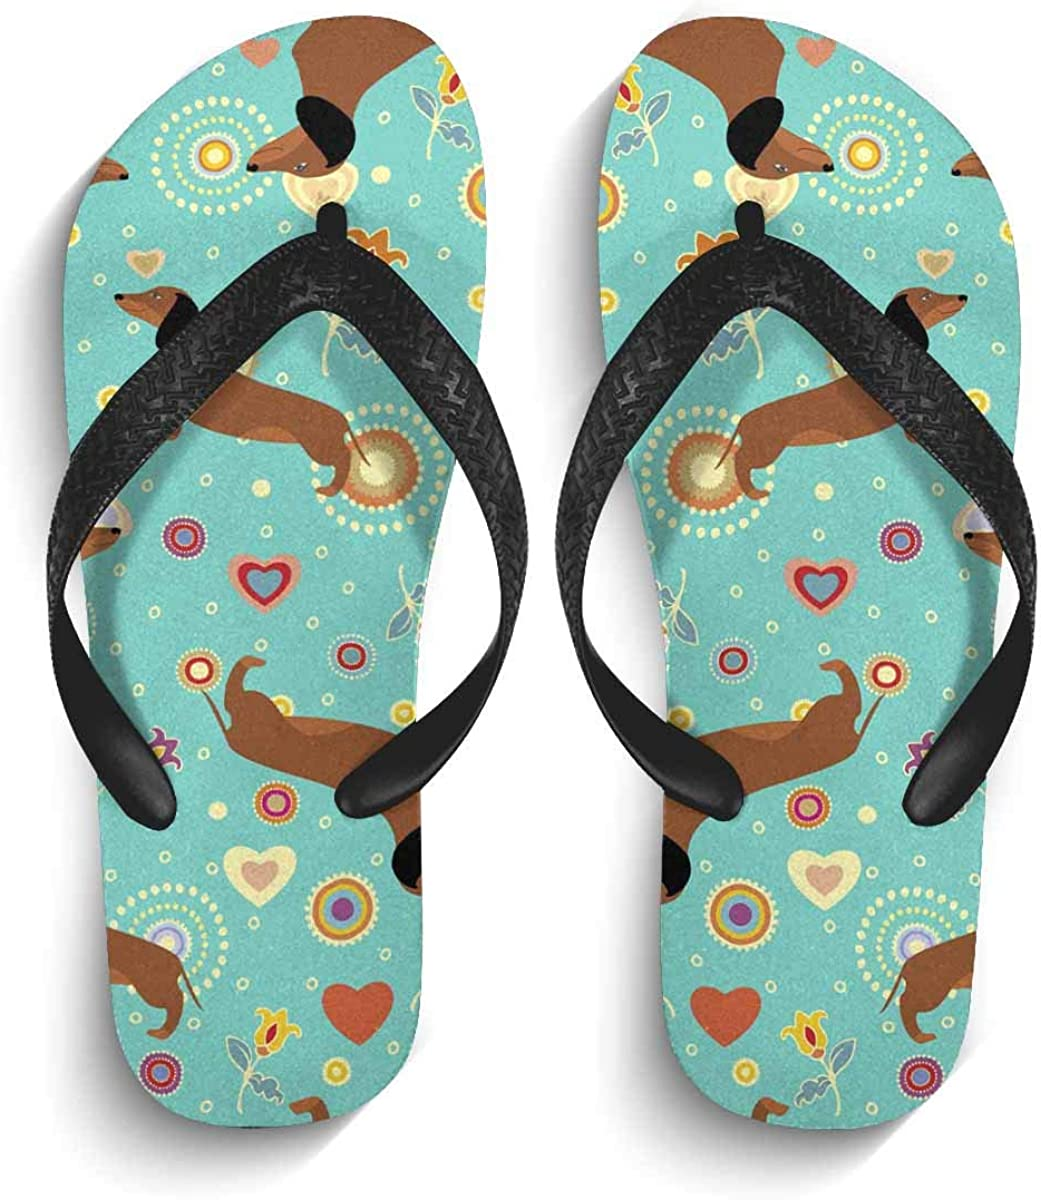 InterestPrint Men's Non-Slip Flip Flops Cute Dachshunds on Turquoise Floral Background Thongs Sandals for Beach Lounging Home